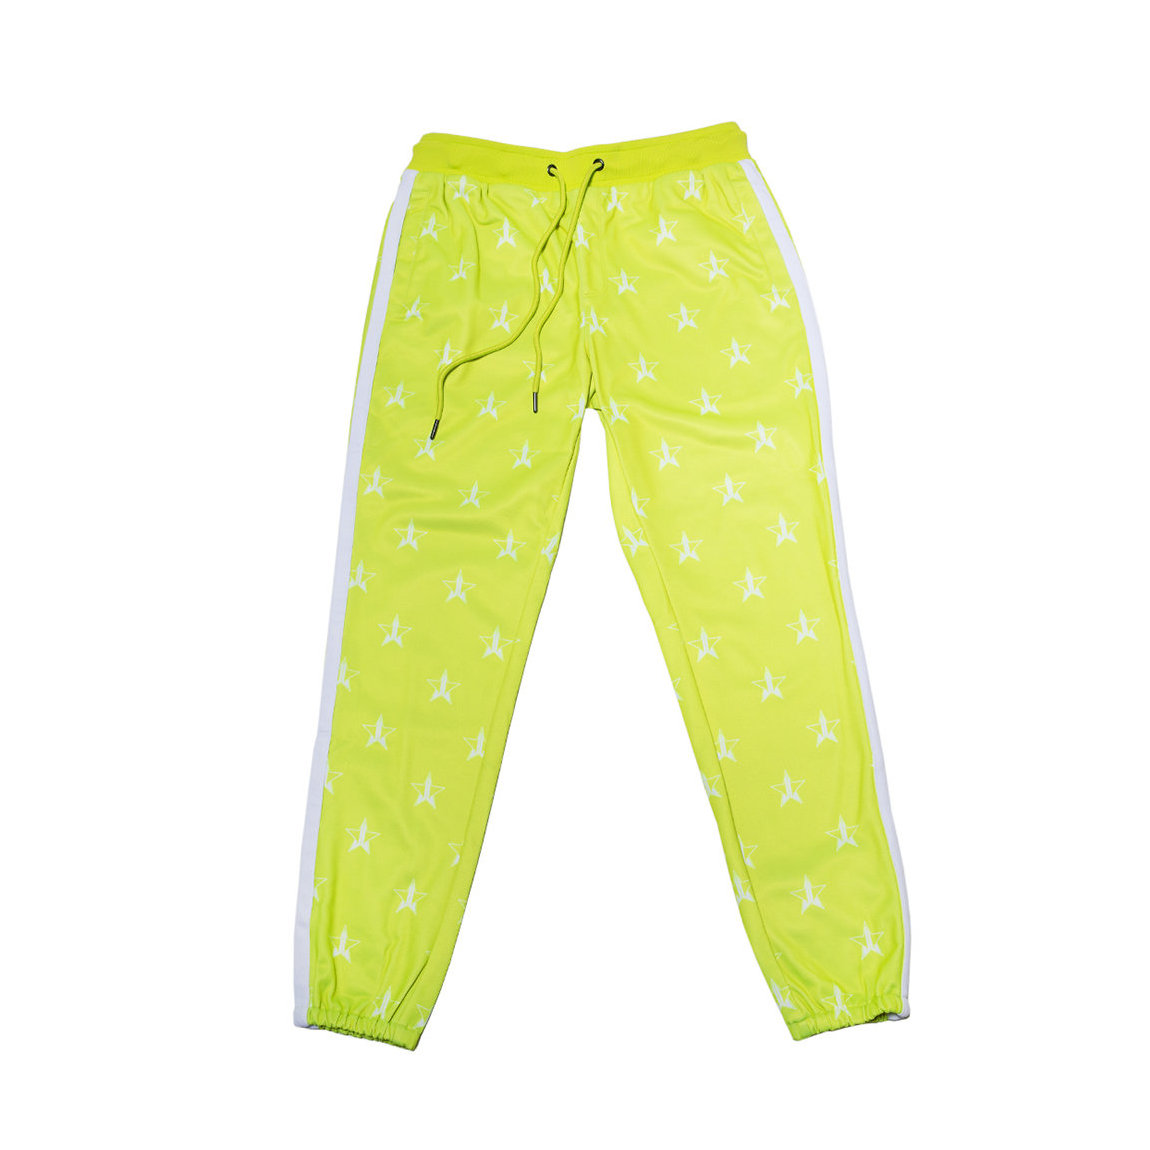 Jeffree Star Cosmetics Chartreuse Track Jogger Large product swatch.